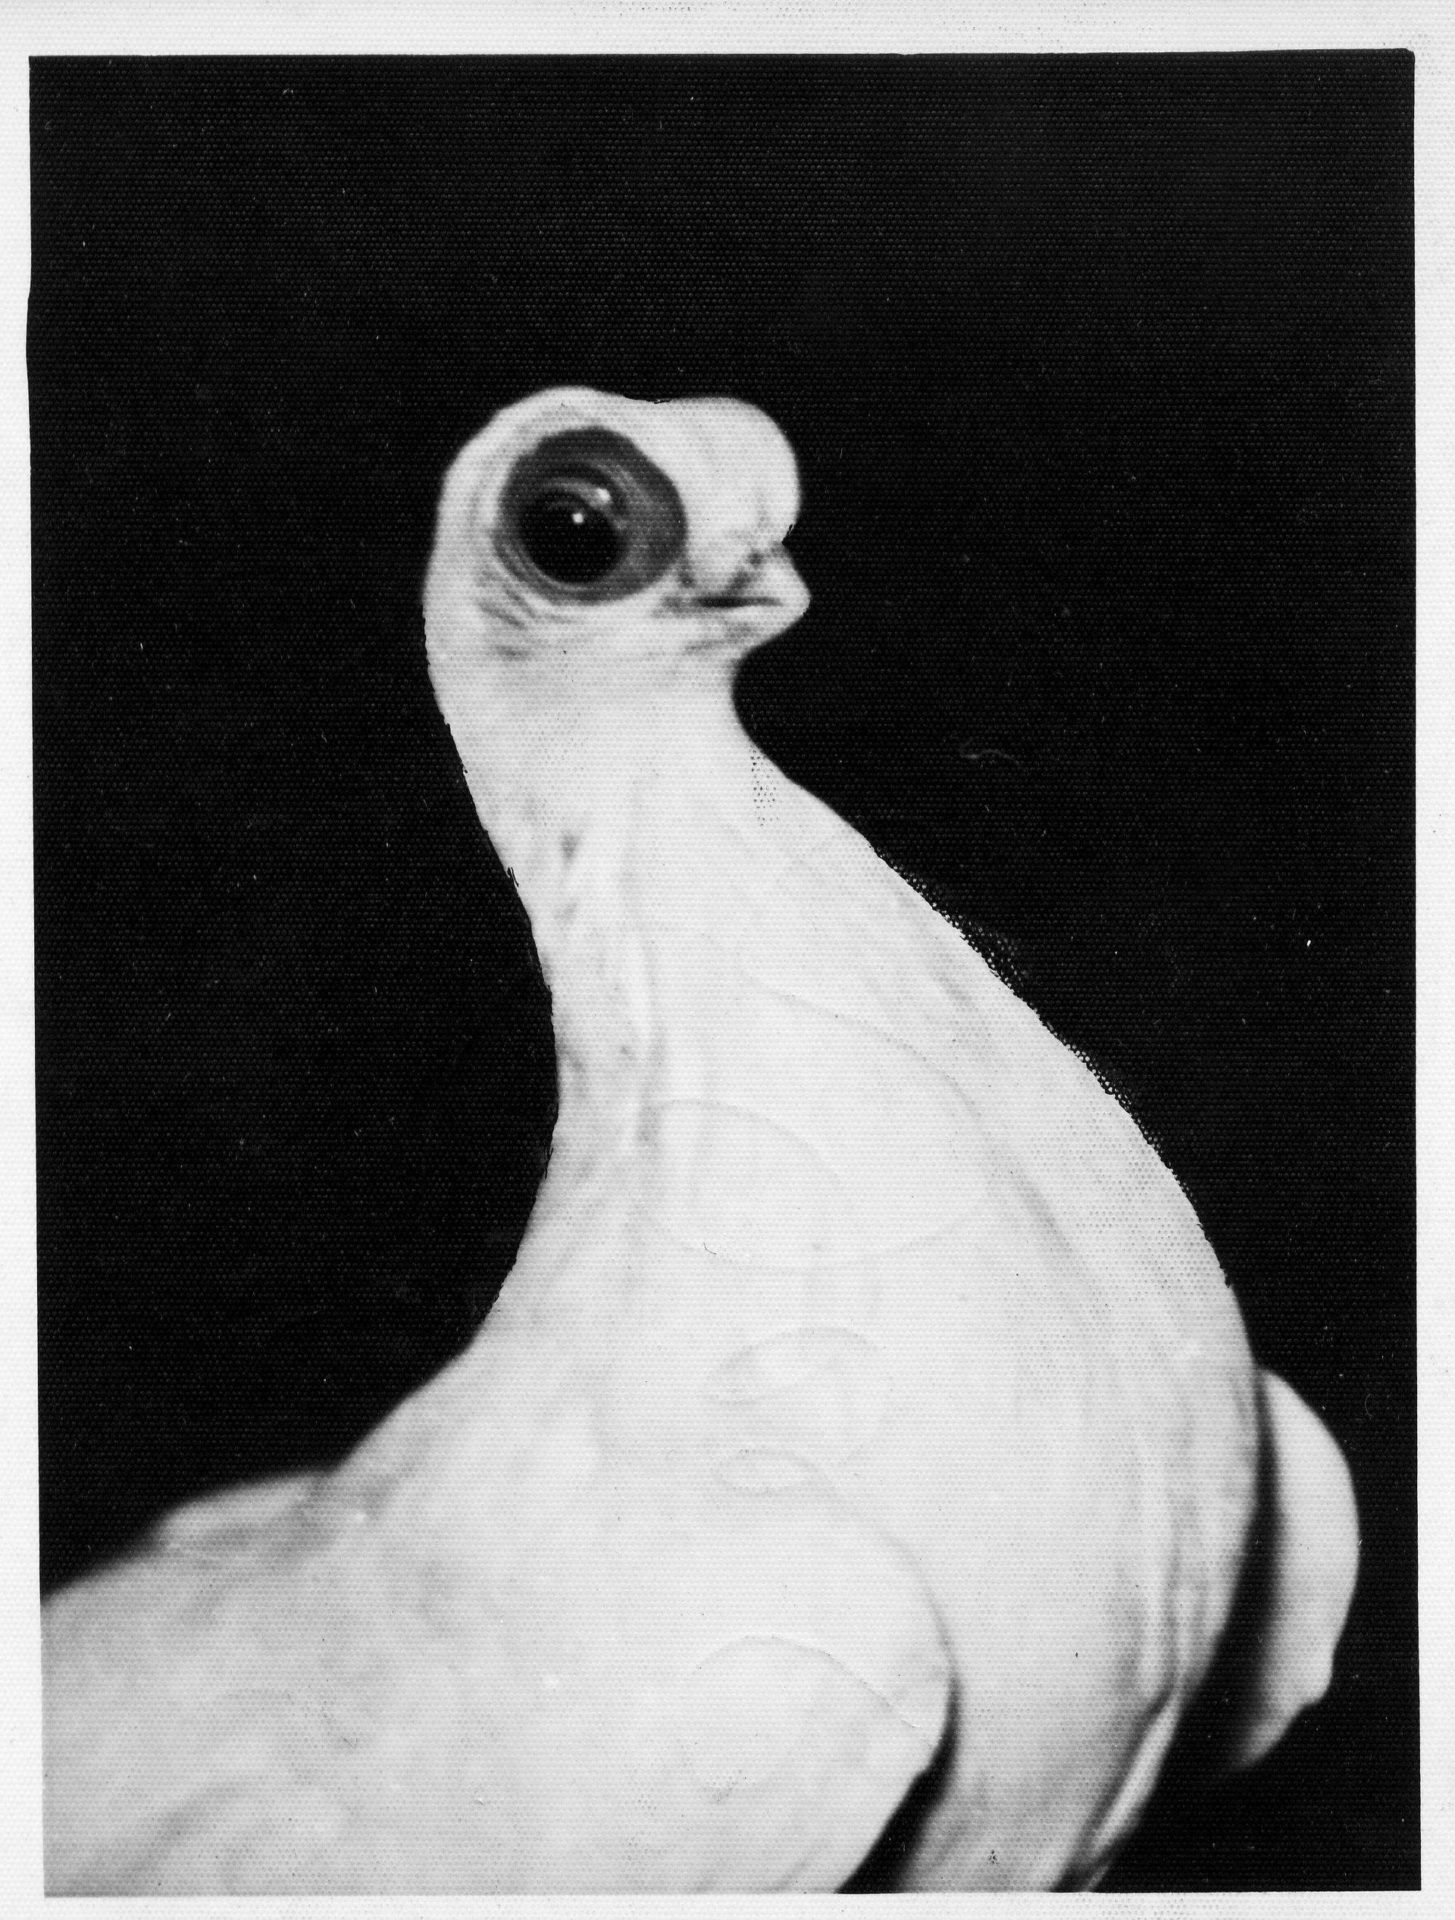 Petra Feriancová, Series Creator – From the Archive of O. Ferianc, New Breeds 1949-1952, 2008, (16/112)